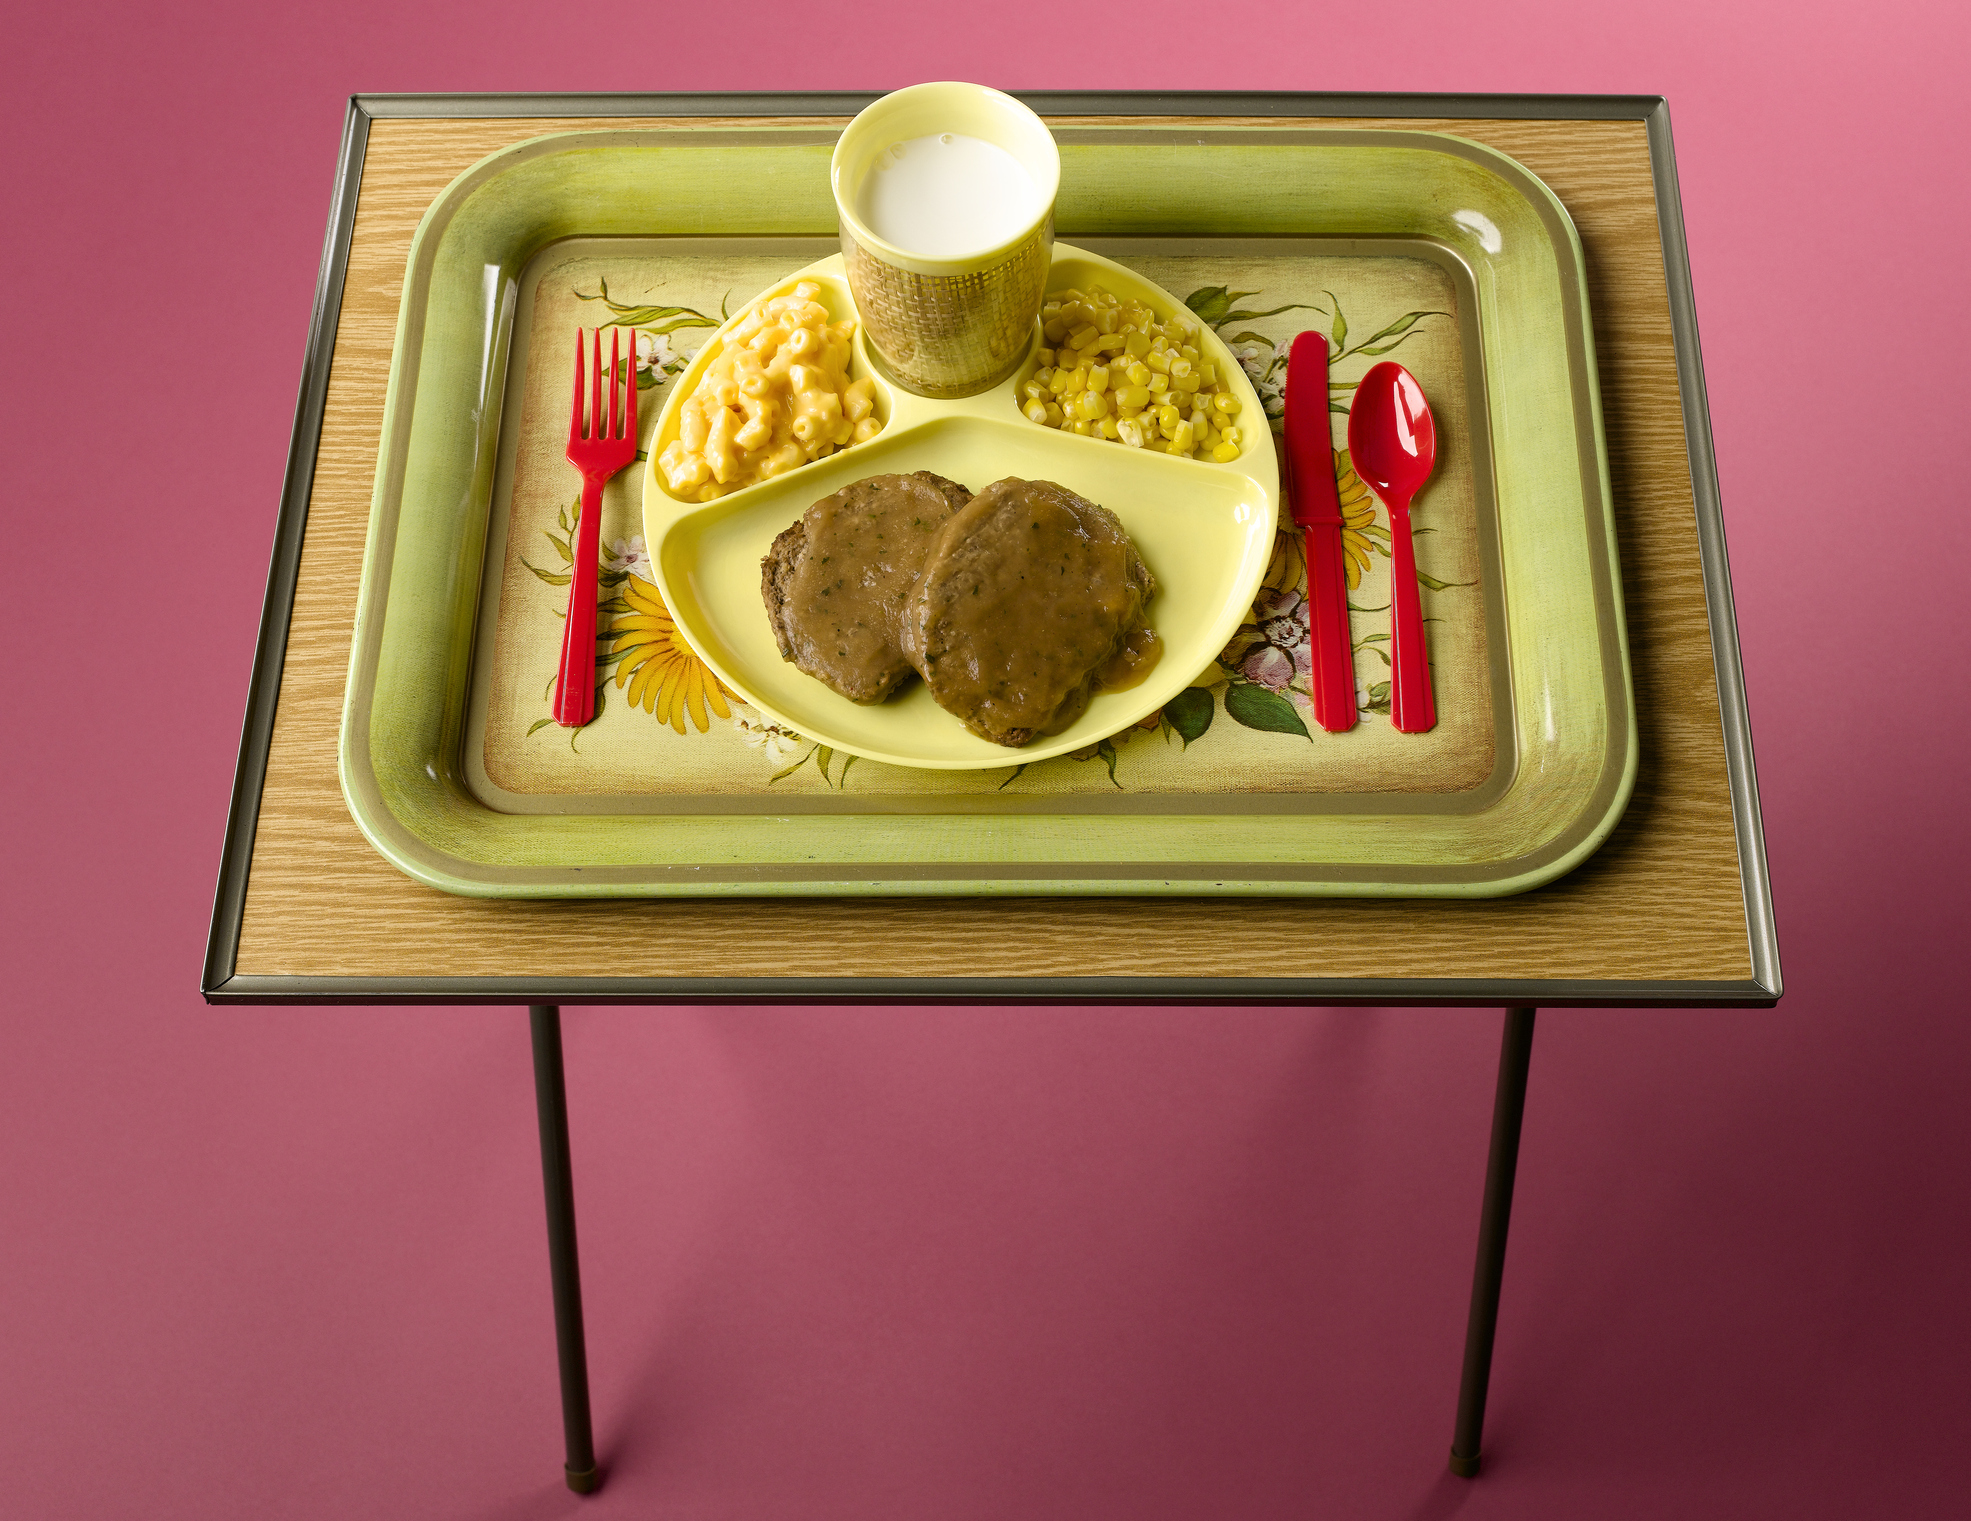 a divided plate with food sits on a tv tray.